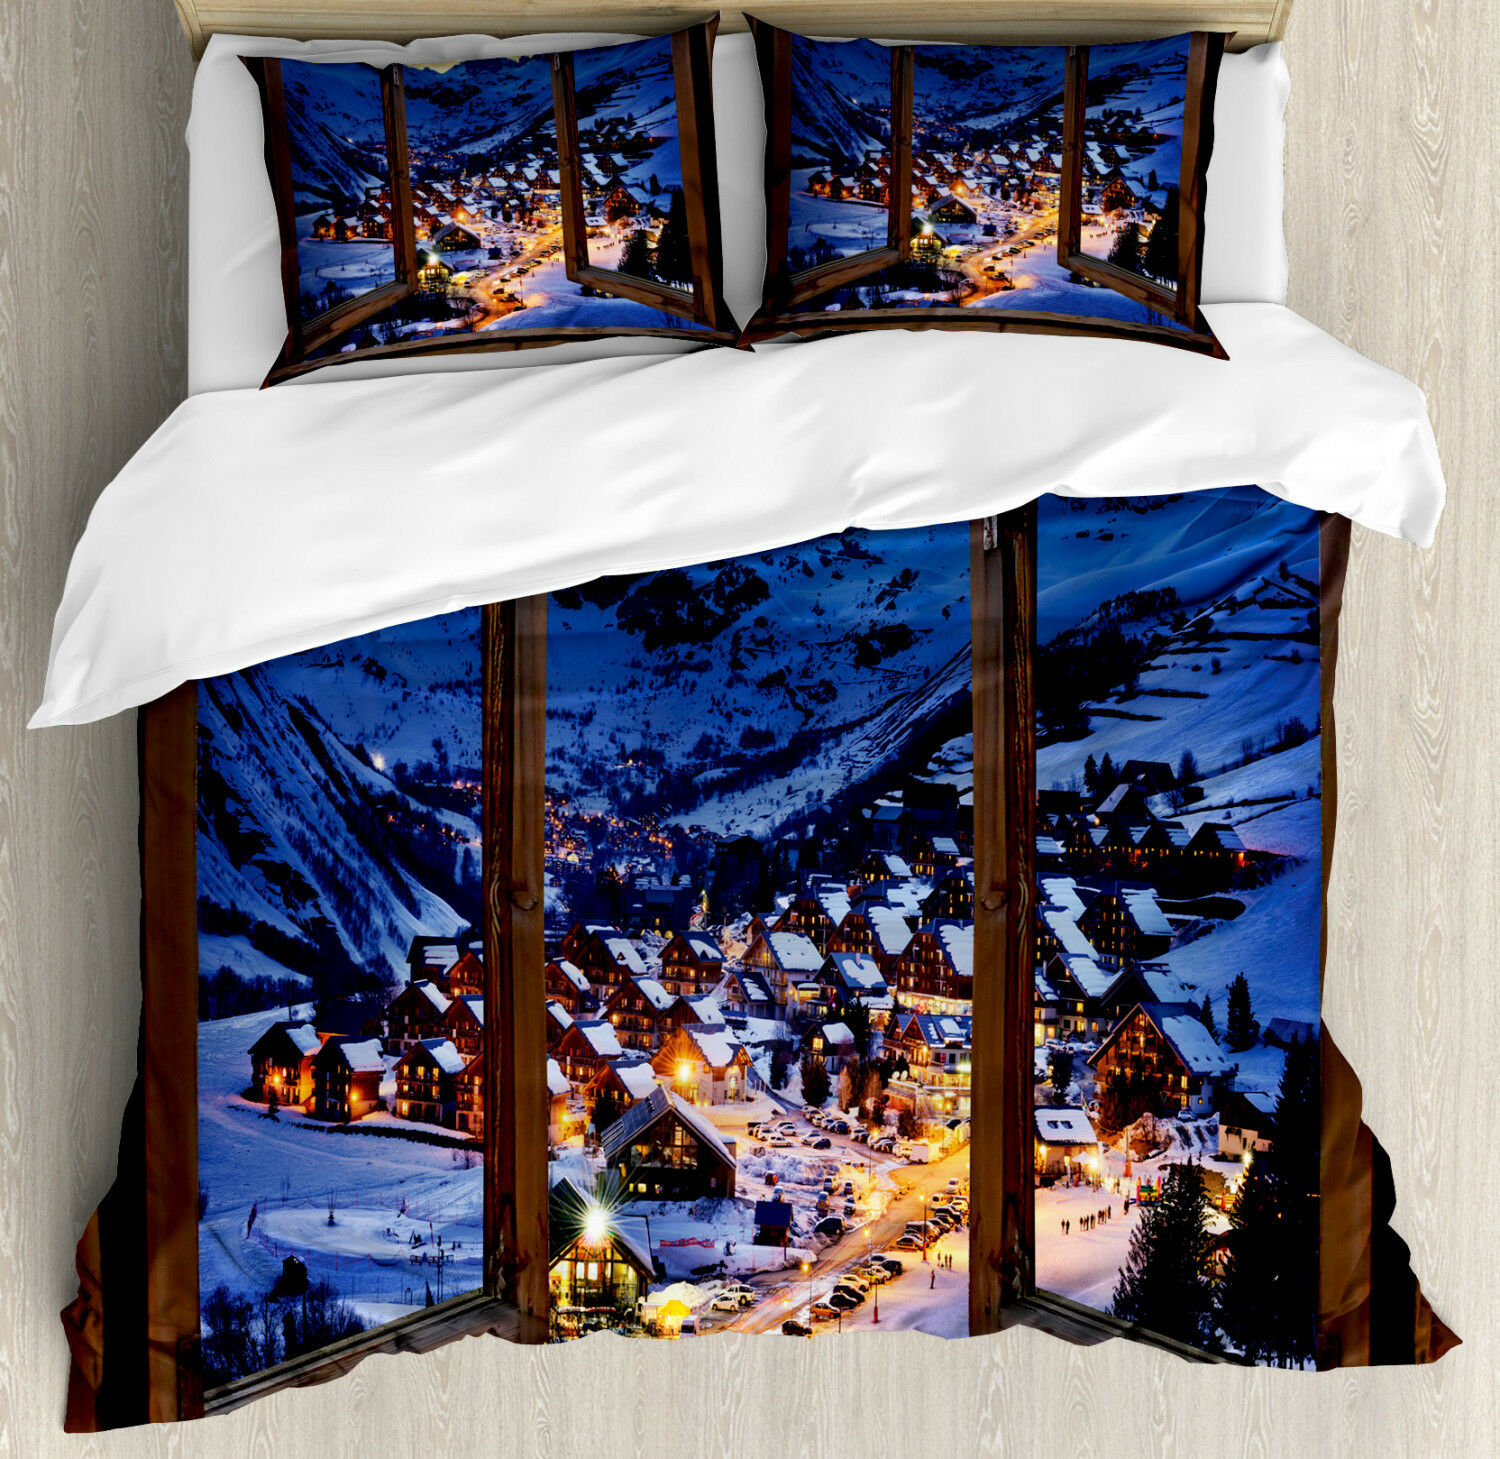 Landscape Duvet Cover Set with Pillow Shams Winter Season Town Print